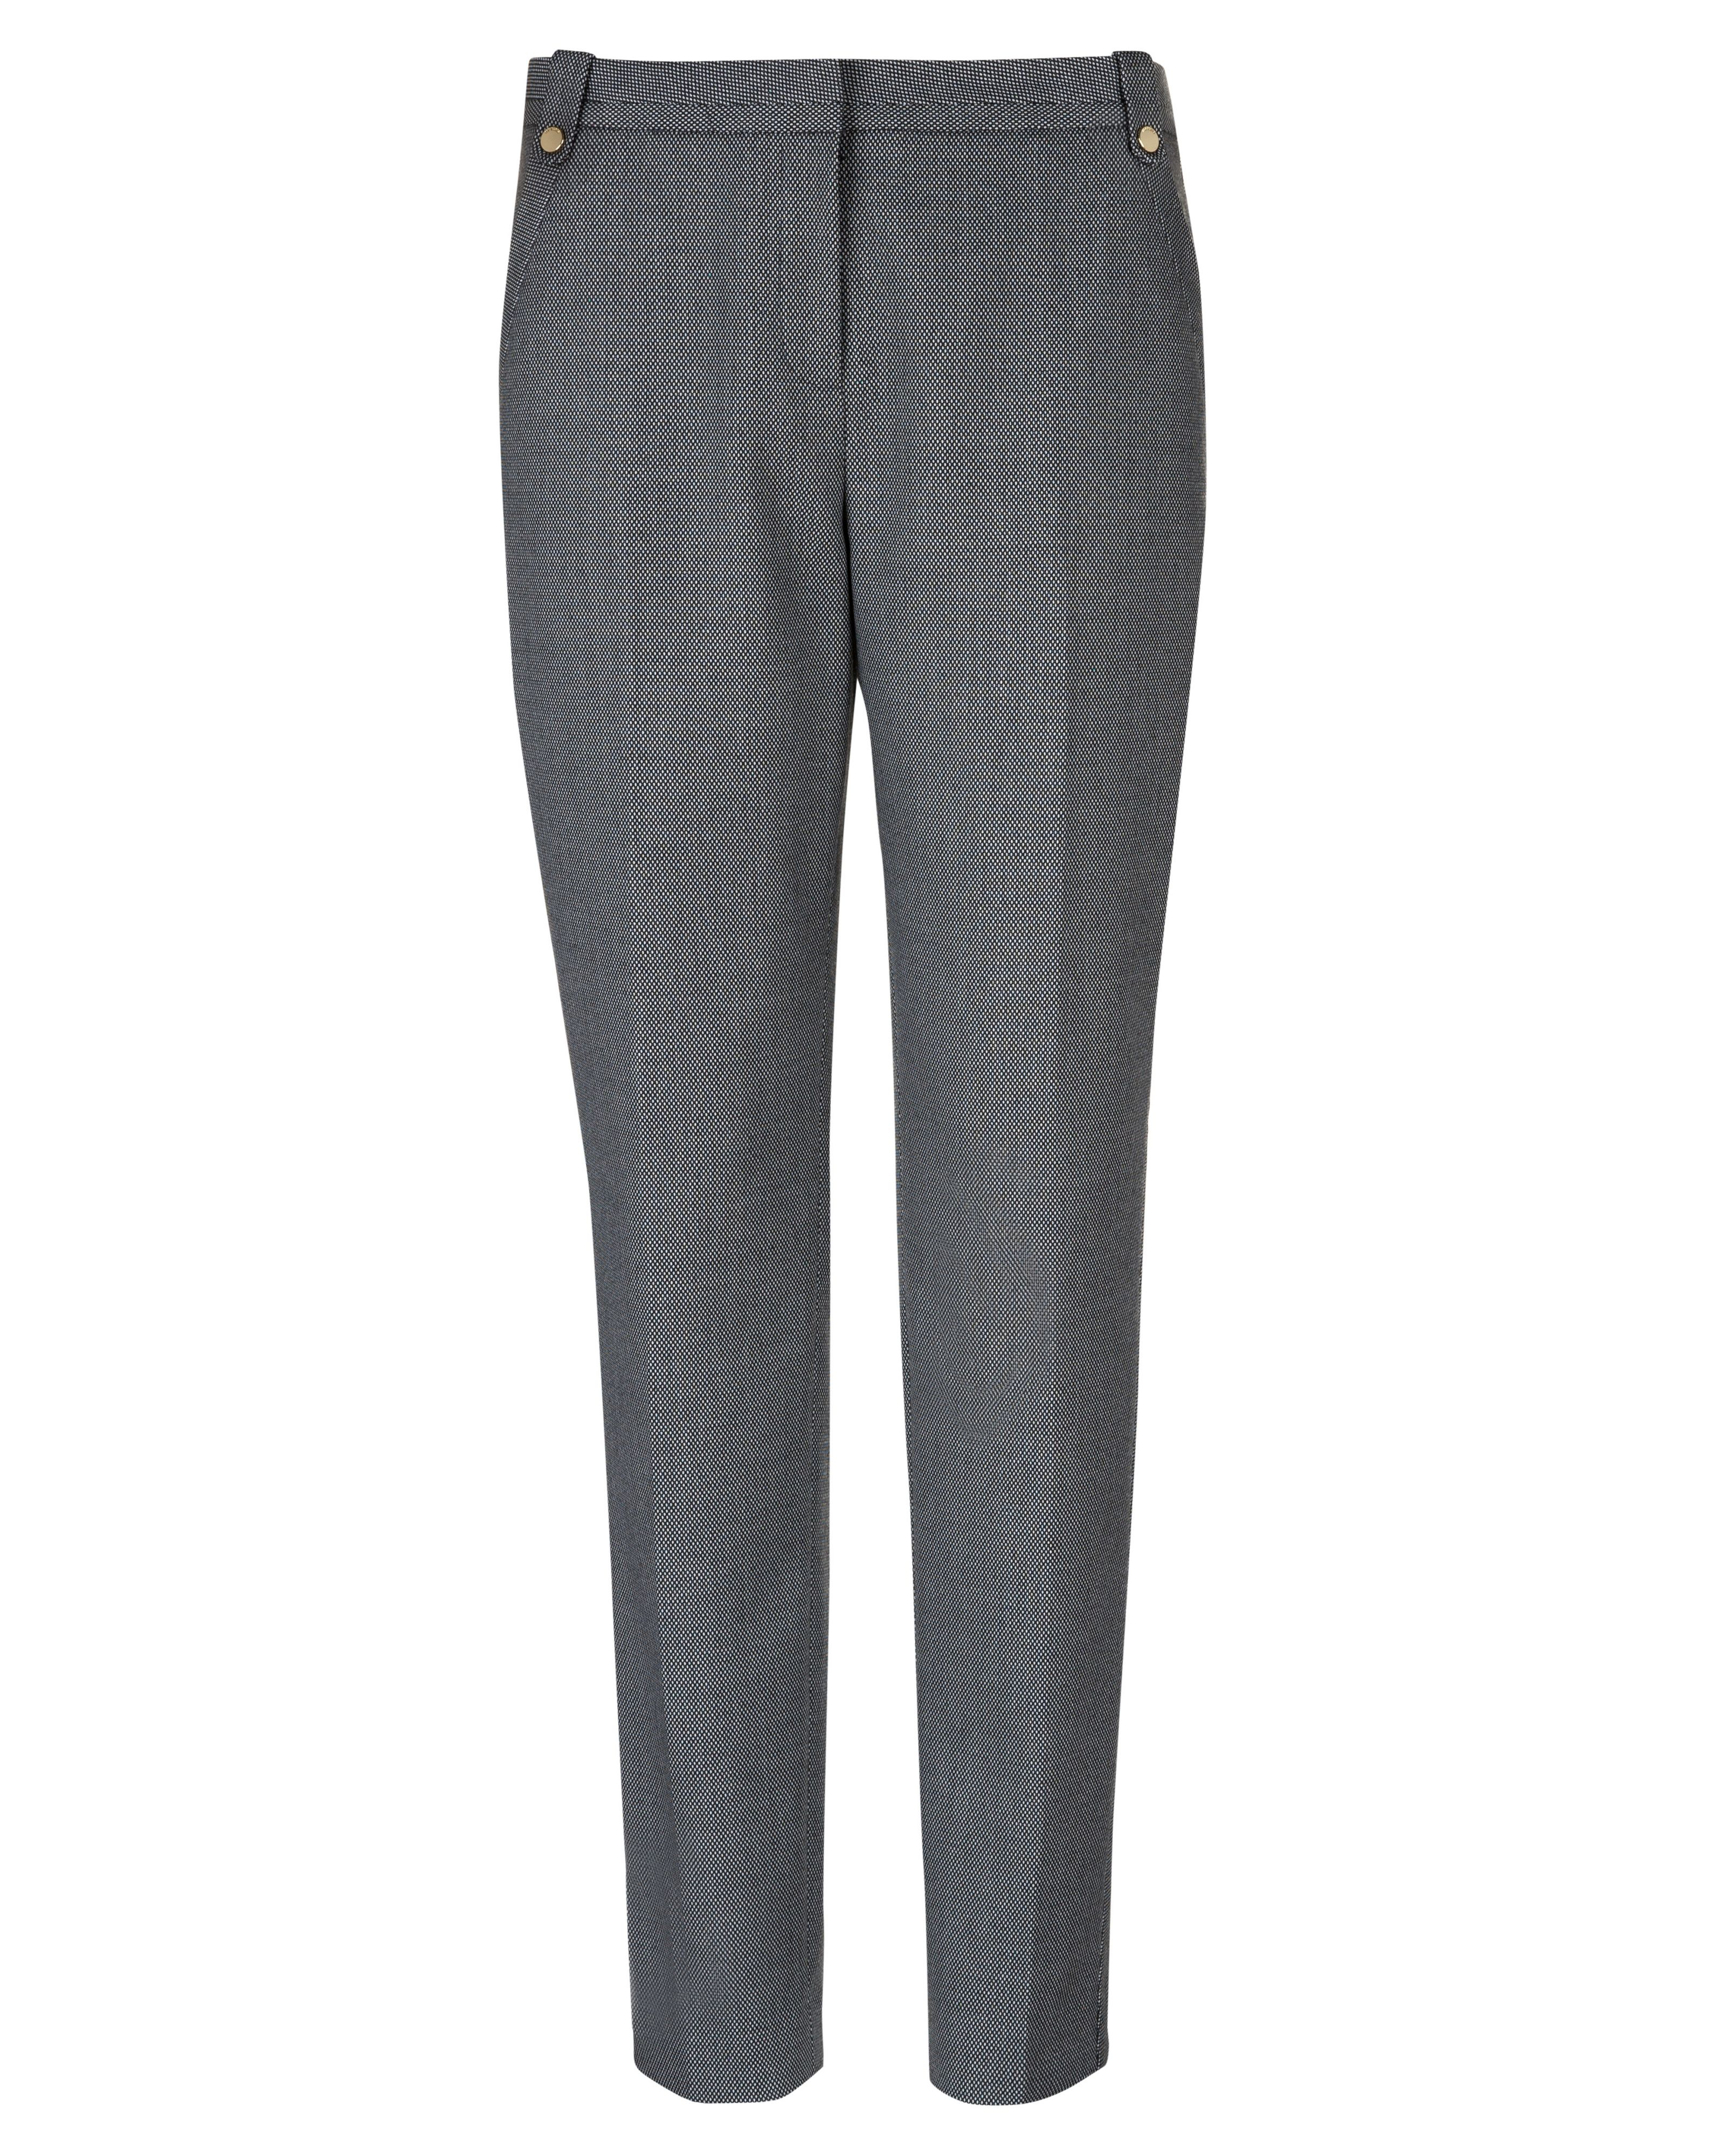 Selest panel suit trouser